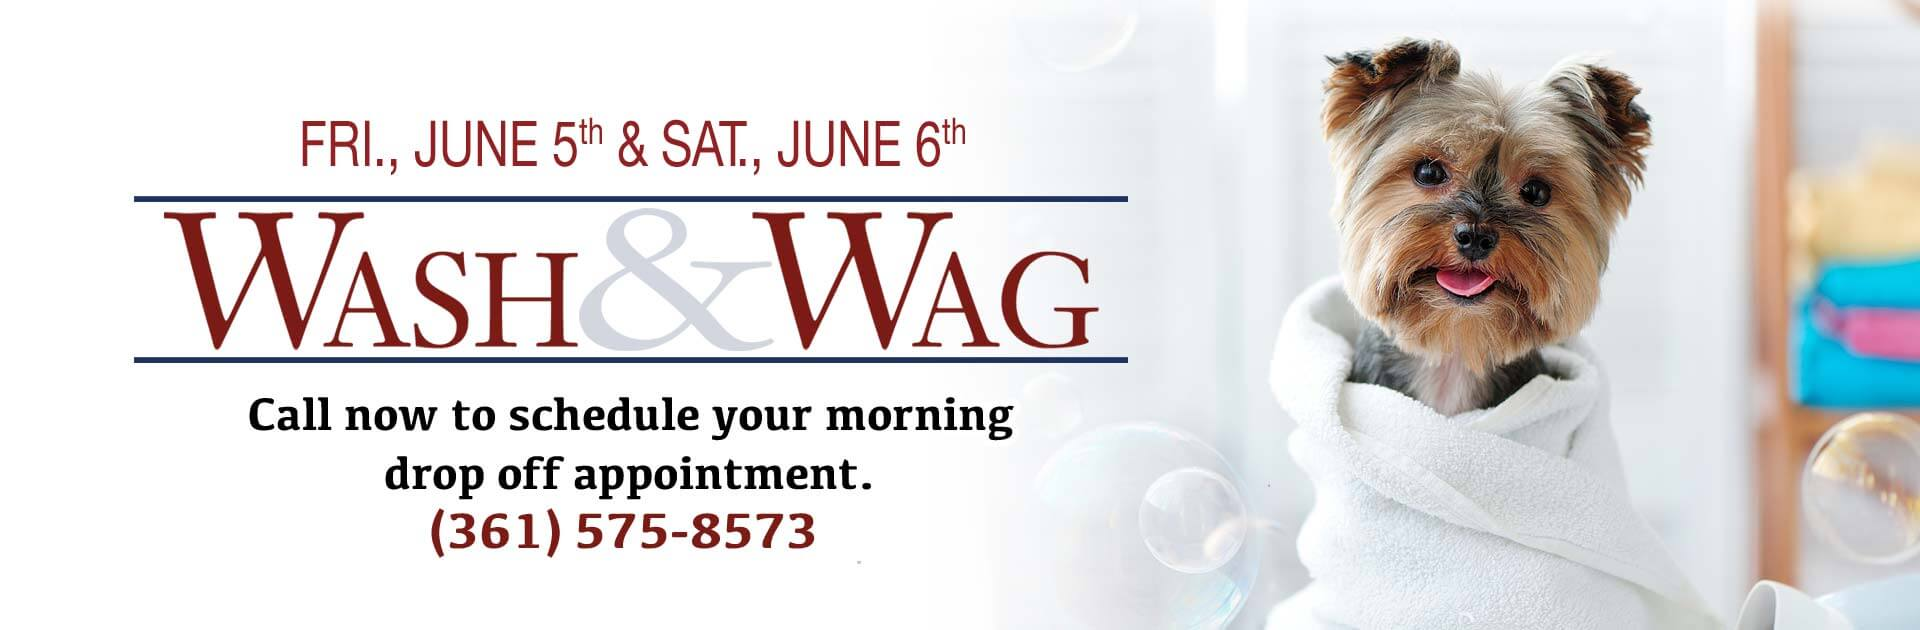 Wash & Wag Friday, June 5th and Saturday, June 6th